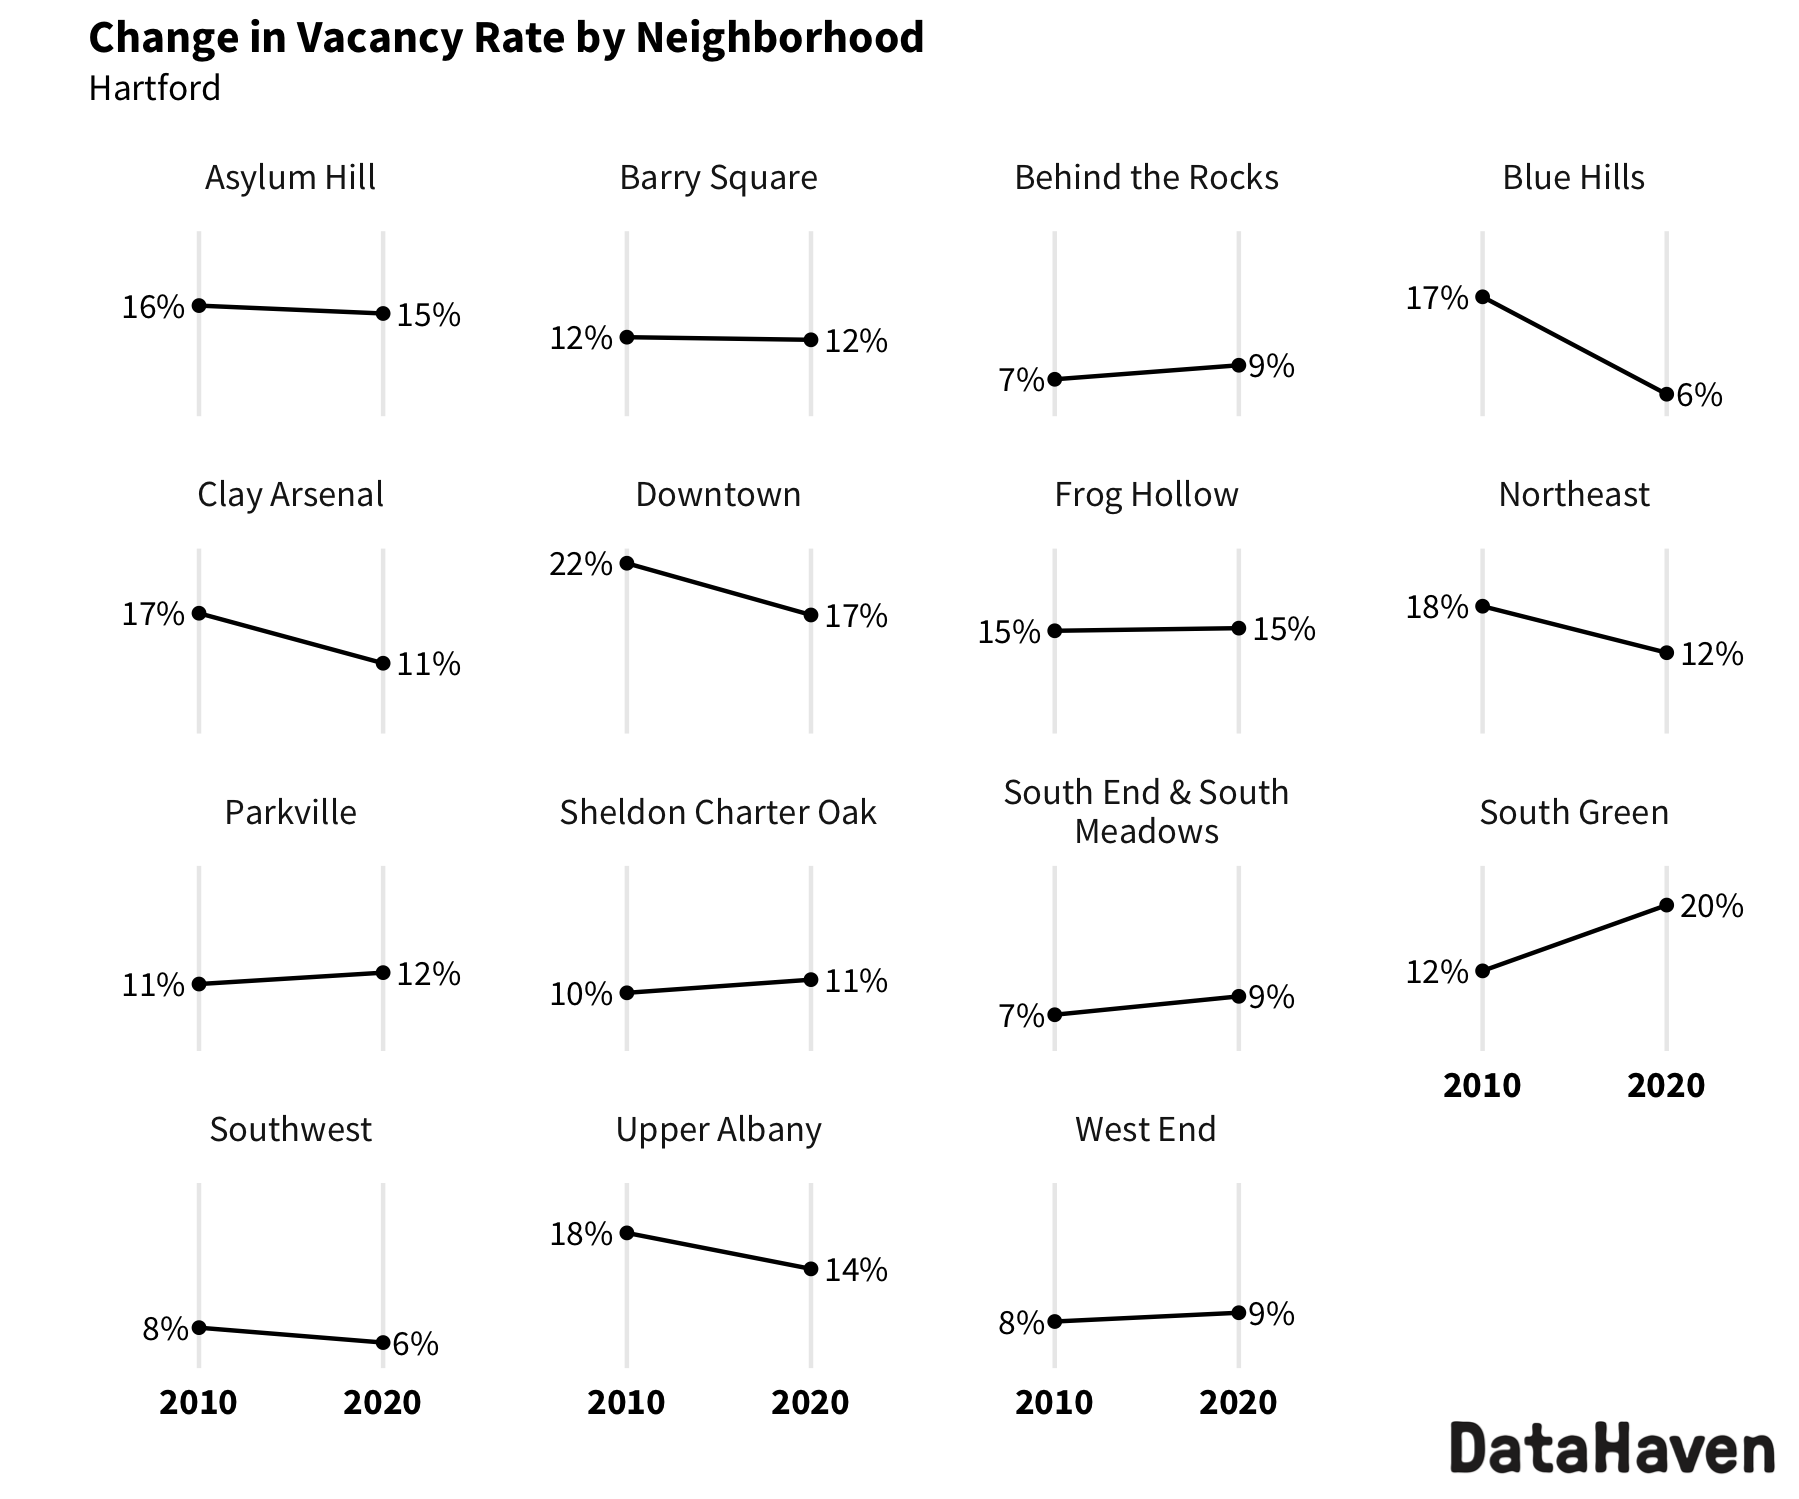 Hartford change in vacancy rate from 2010 to 2020 Census by neighborhood